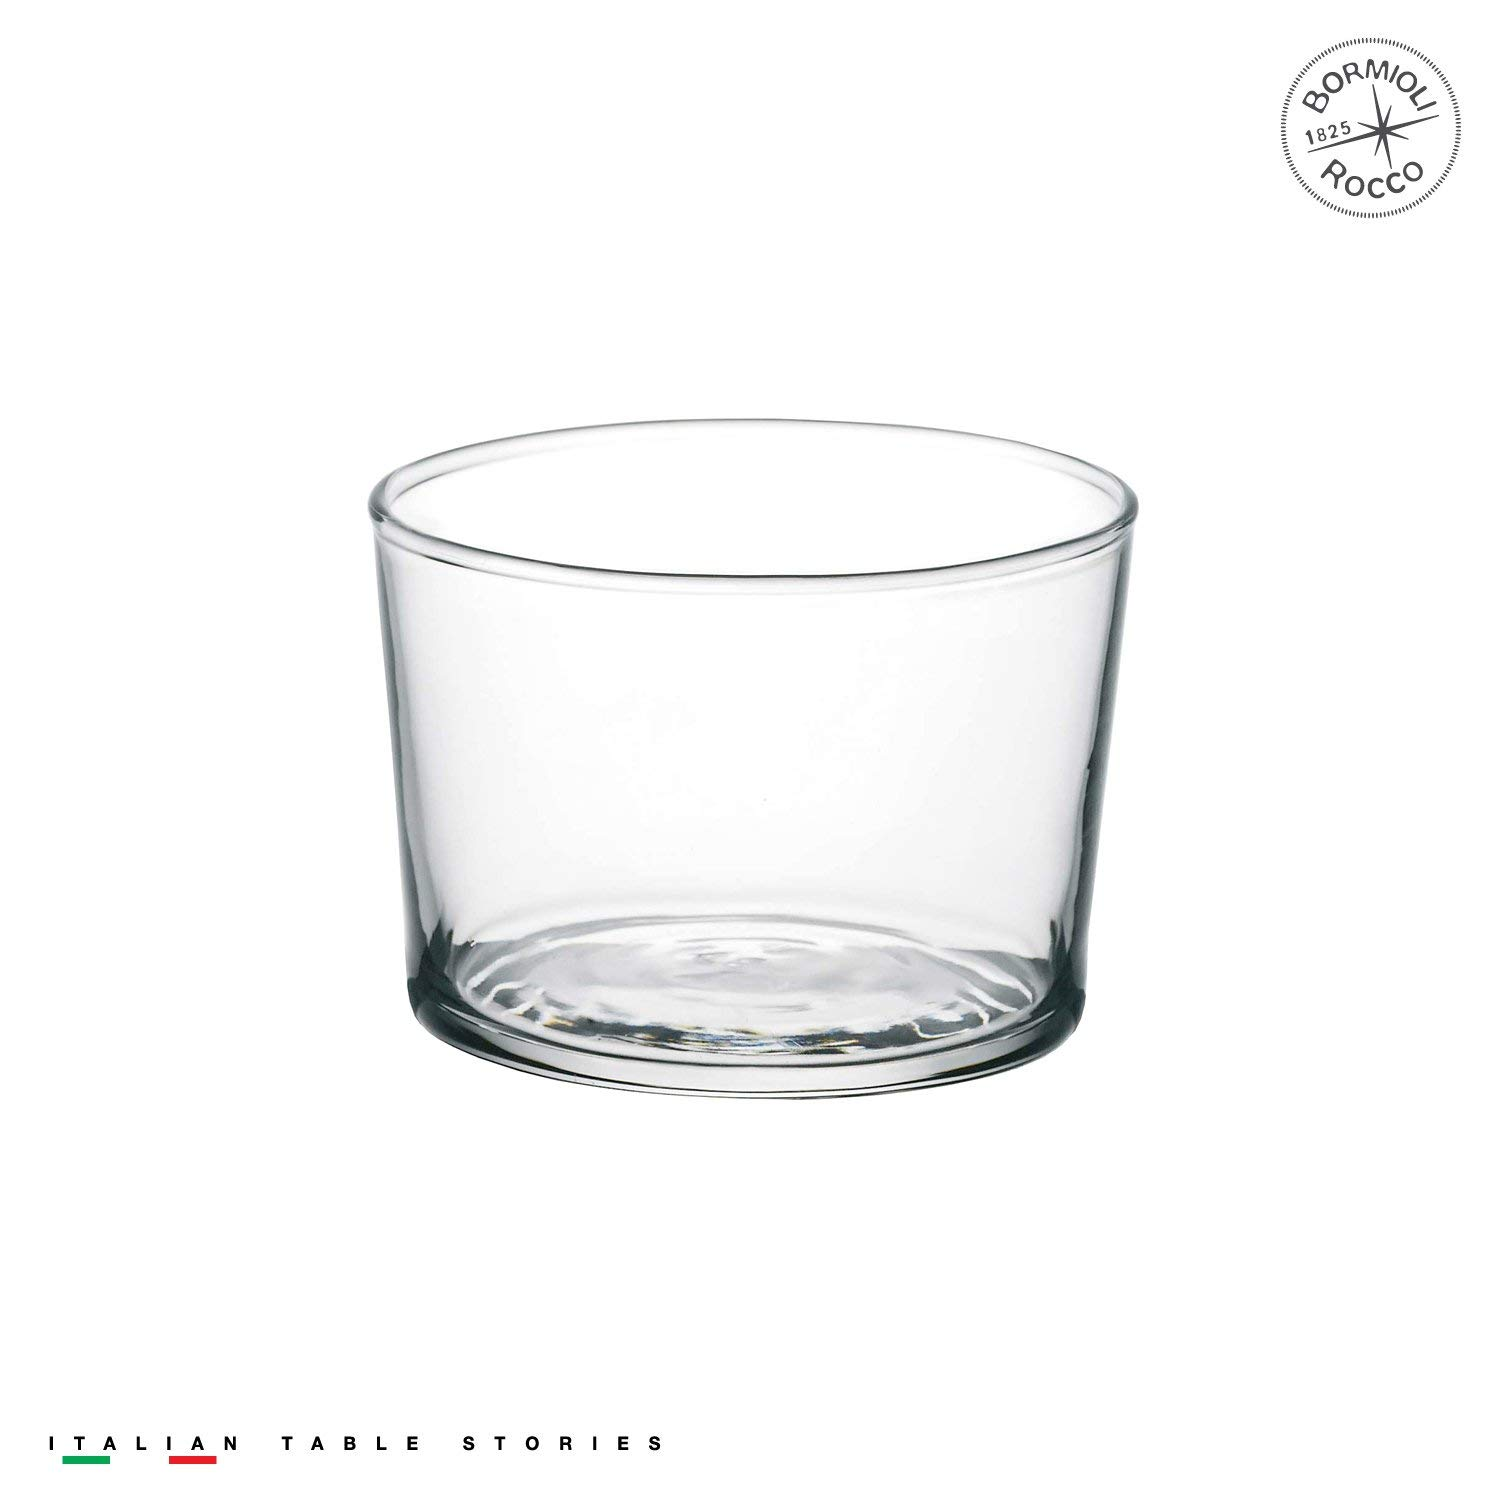 Simple clear glass tumblers made in Italy